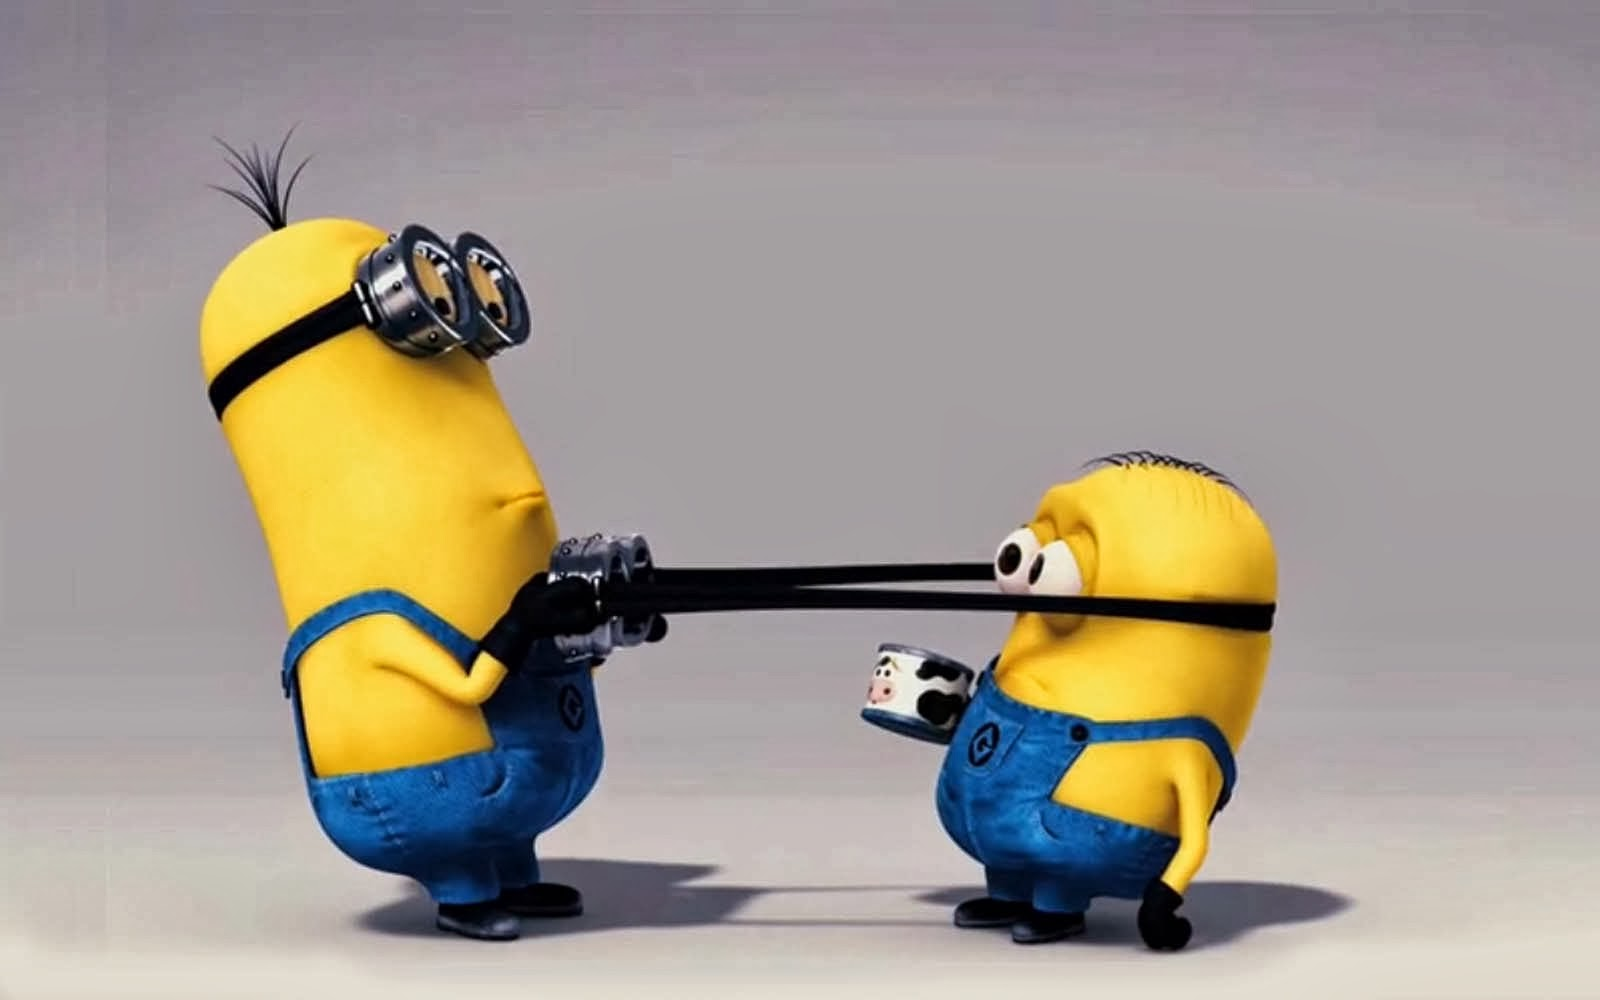 Minion wallpapers hd beautiful wallpapers collection 2014 - Despicable minions wallpaper ...